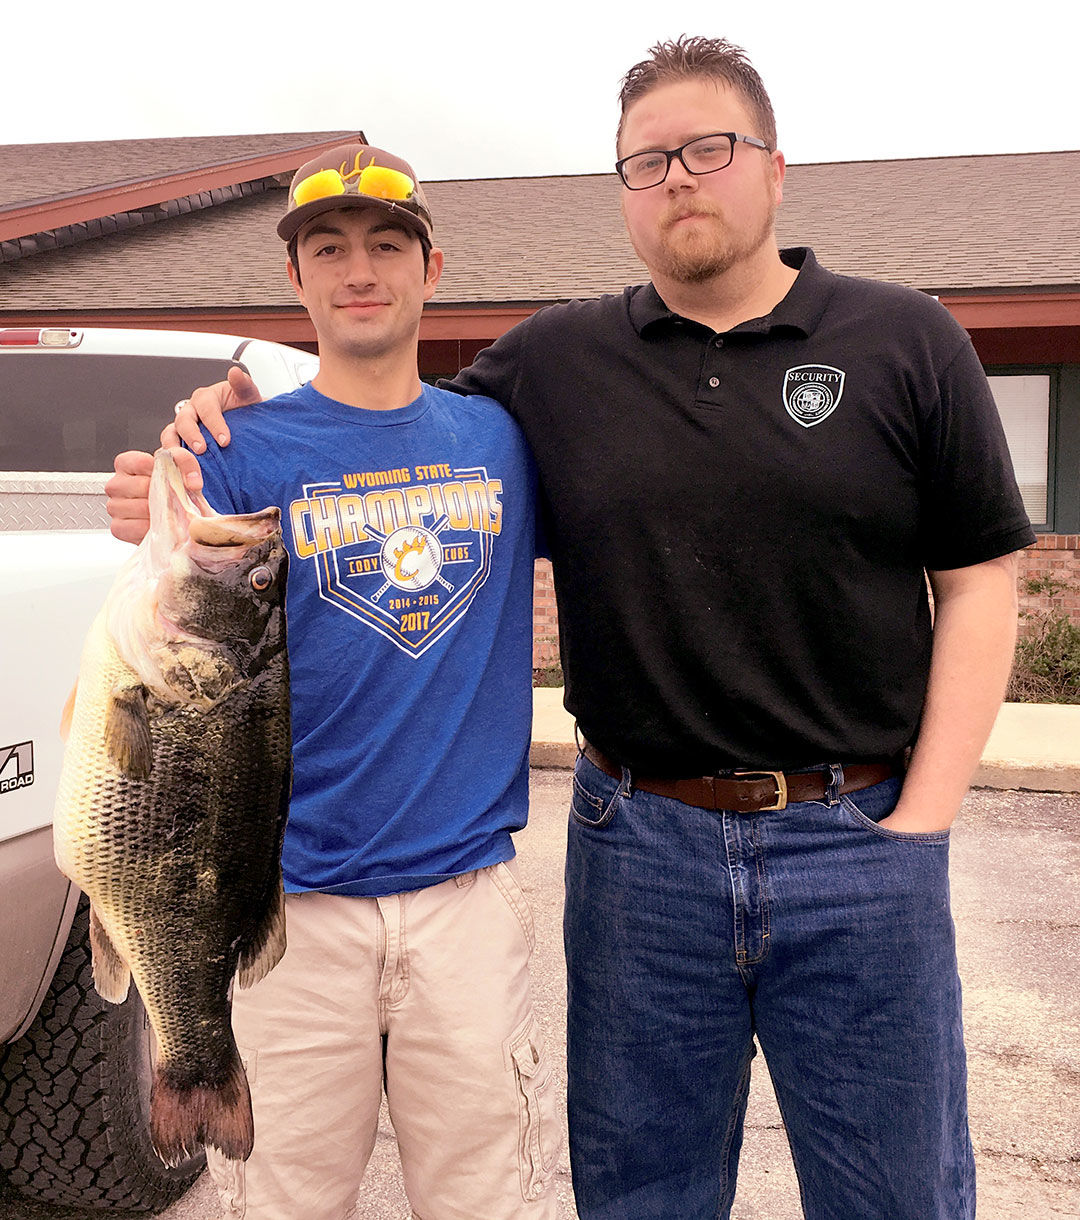 Record-breaking catch: 11 51-lb largemouth bass stuns